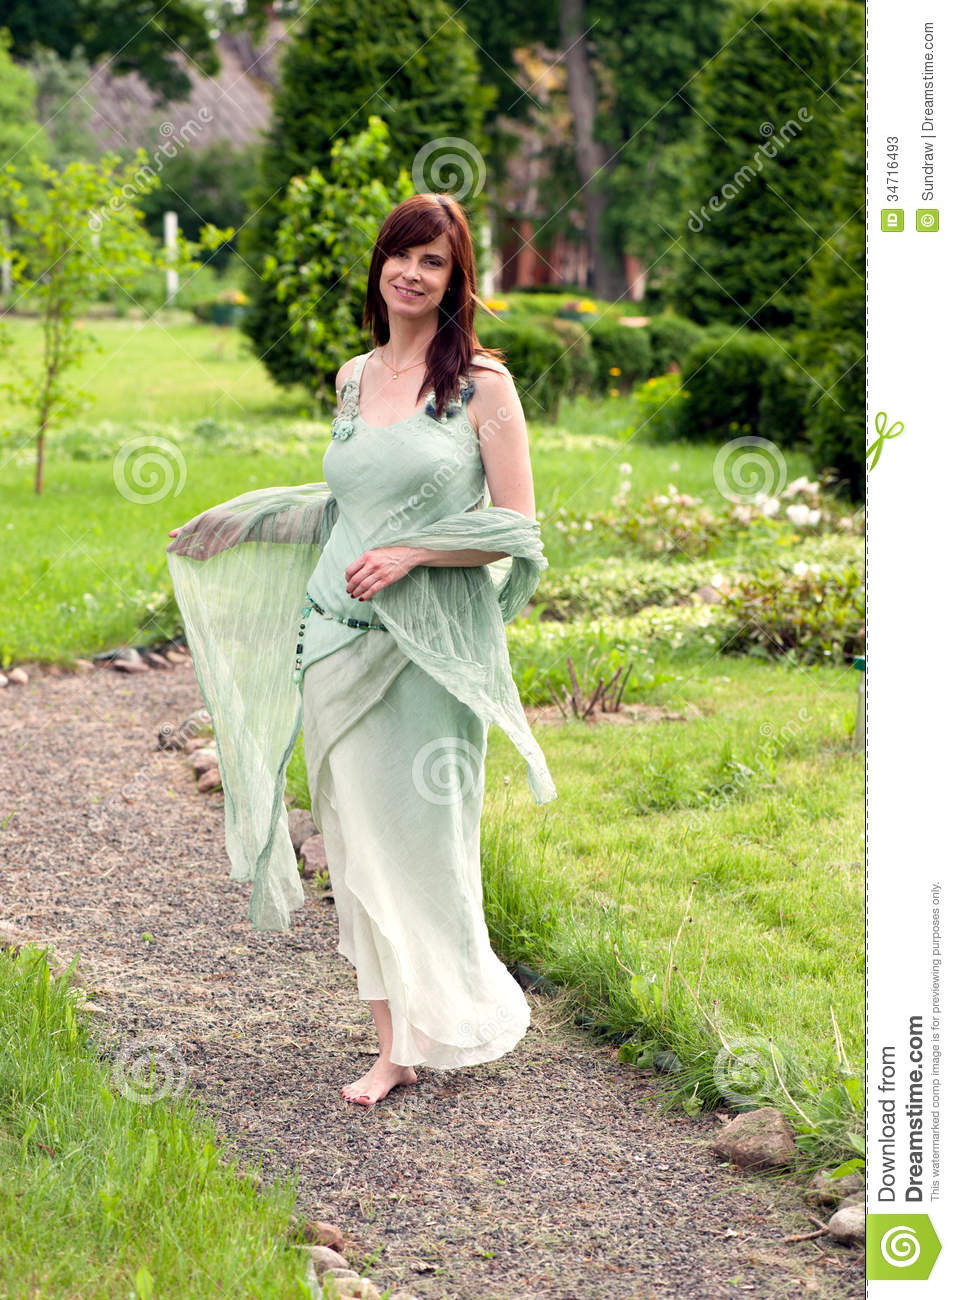 Beautiful Woman In The Garden Stock Photos - Image: 34716493